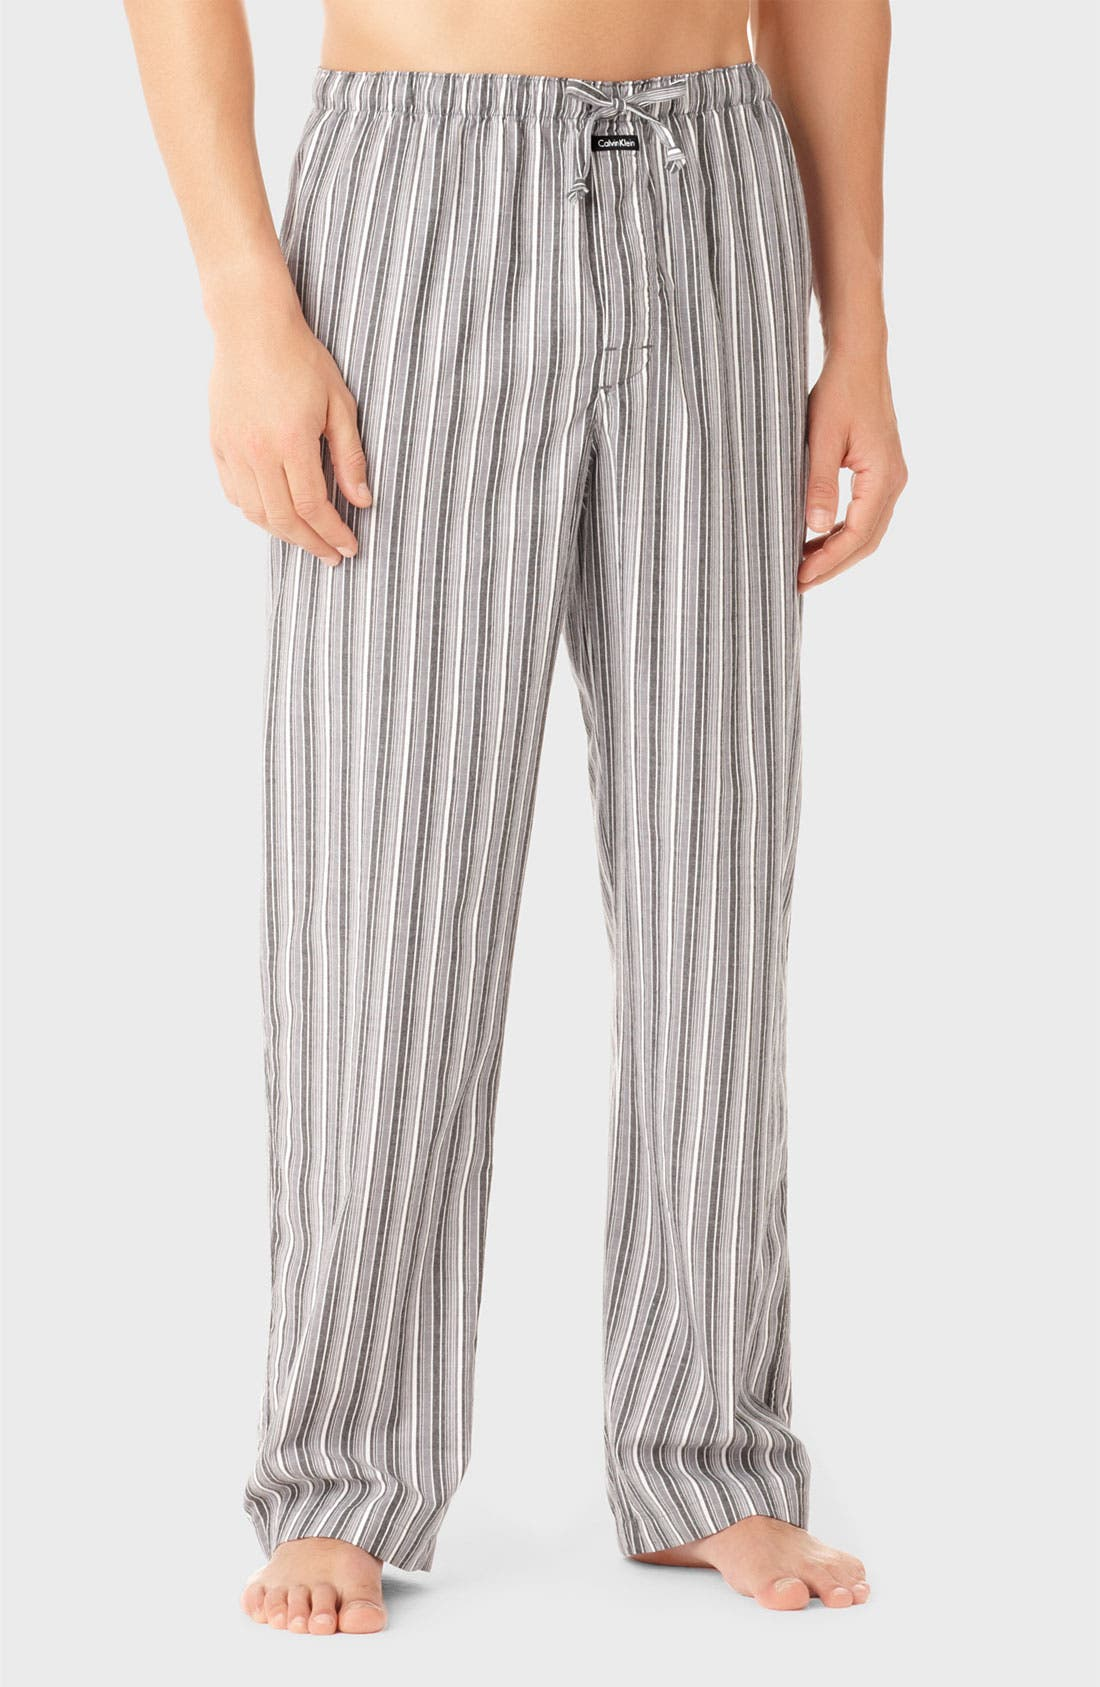 Alternate Image 1 Selected - Calvin Klein Cotton Lounge Pants